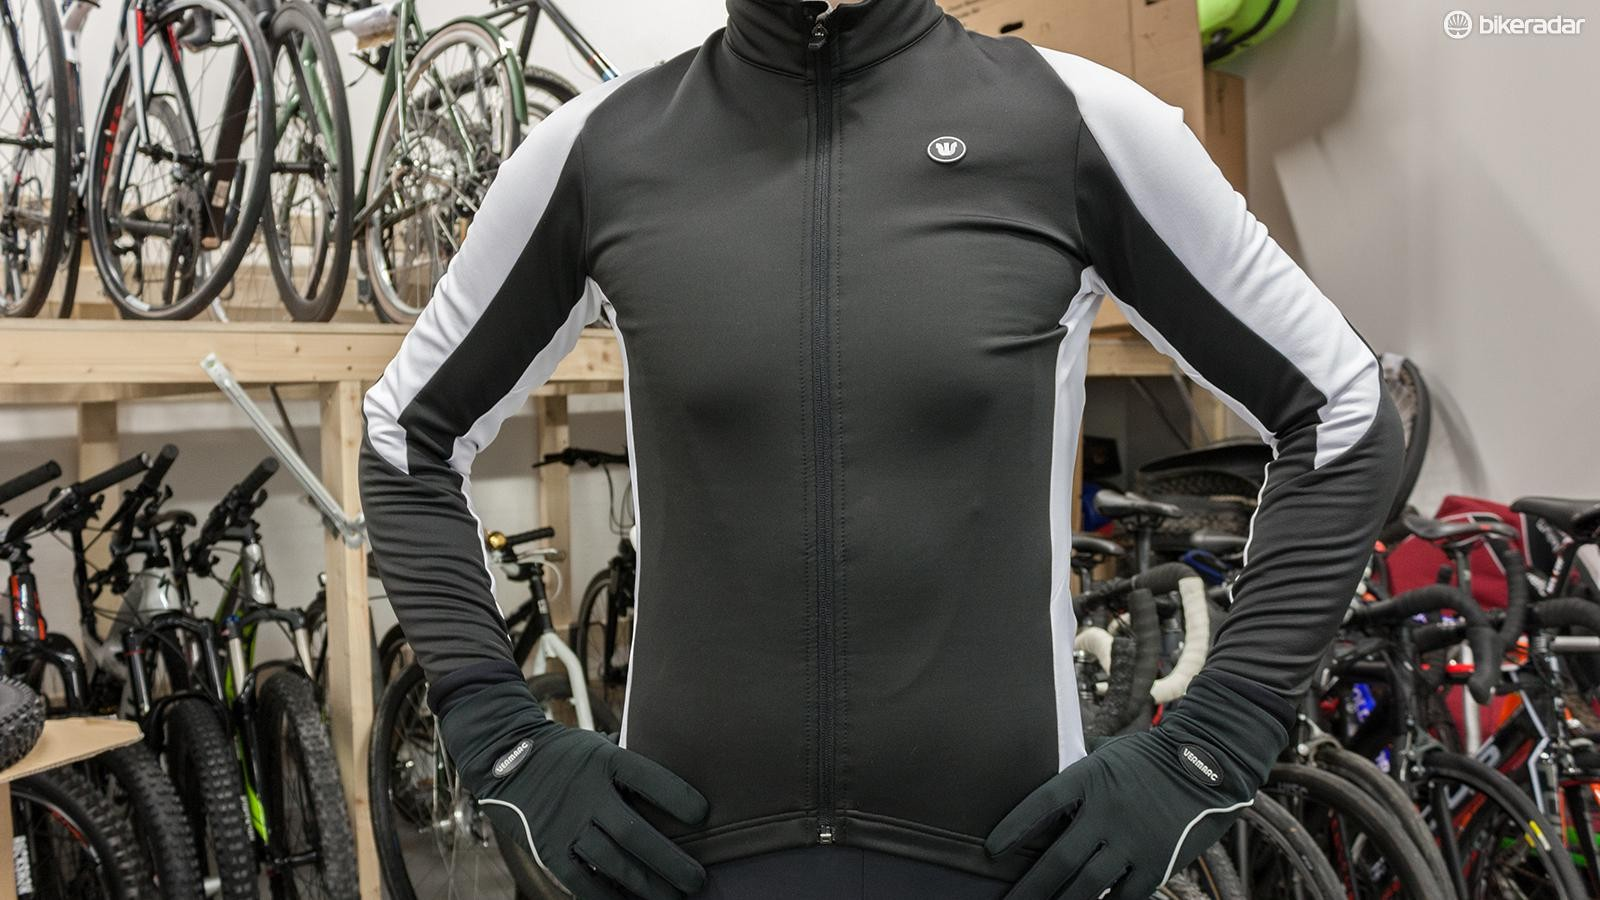 The Prima PRR Technical jacket has a close and comfortable fit